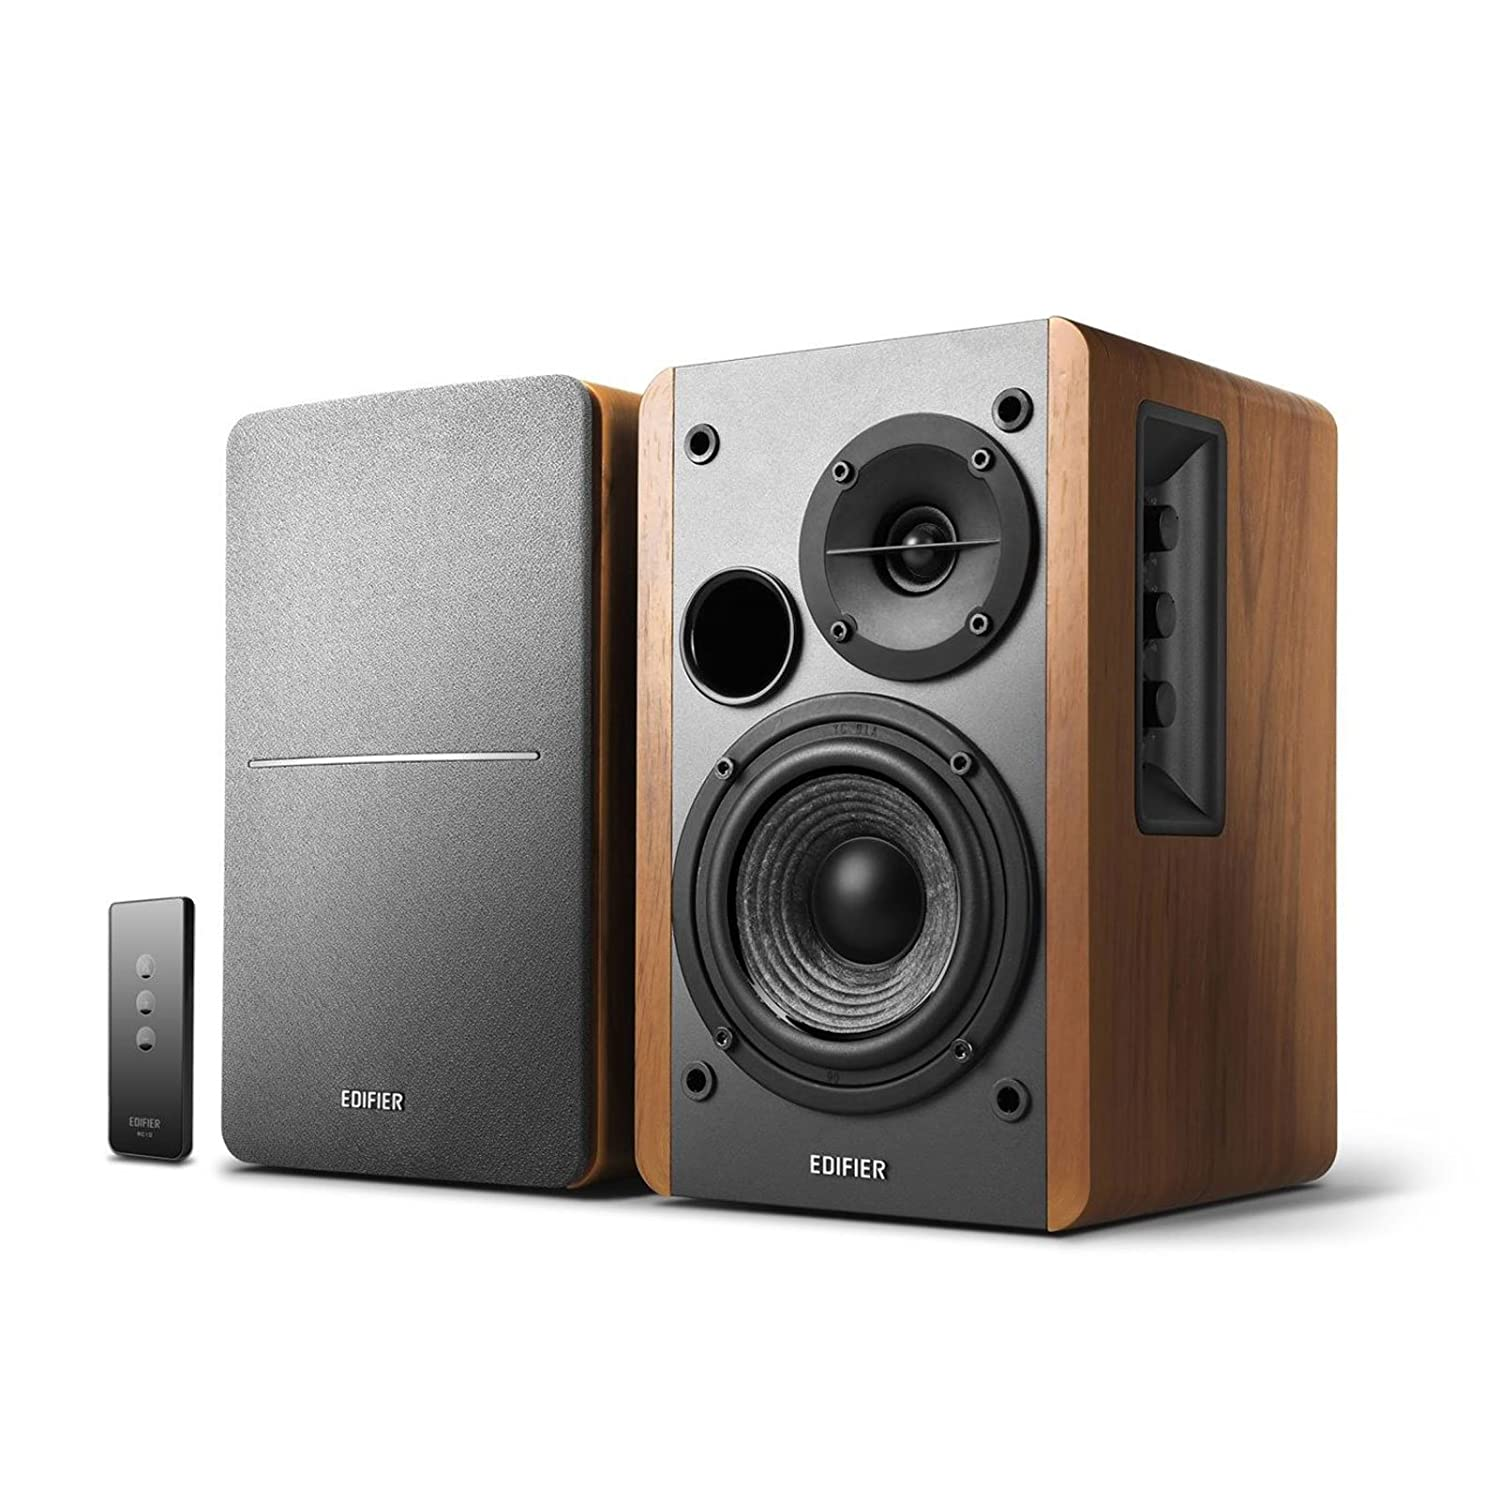 Best Bookshelf Speaker under $100